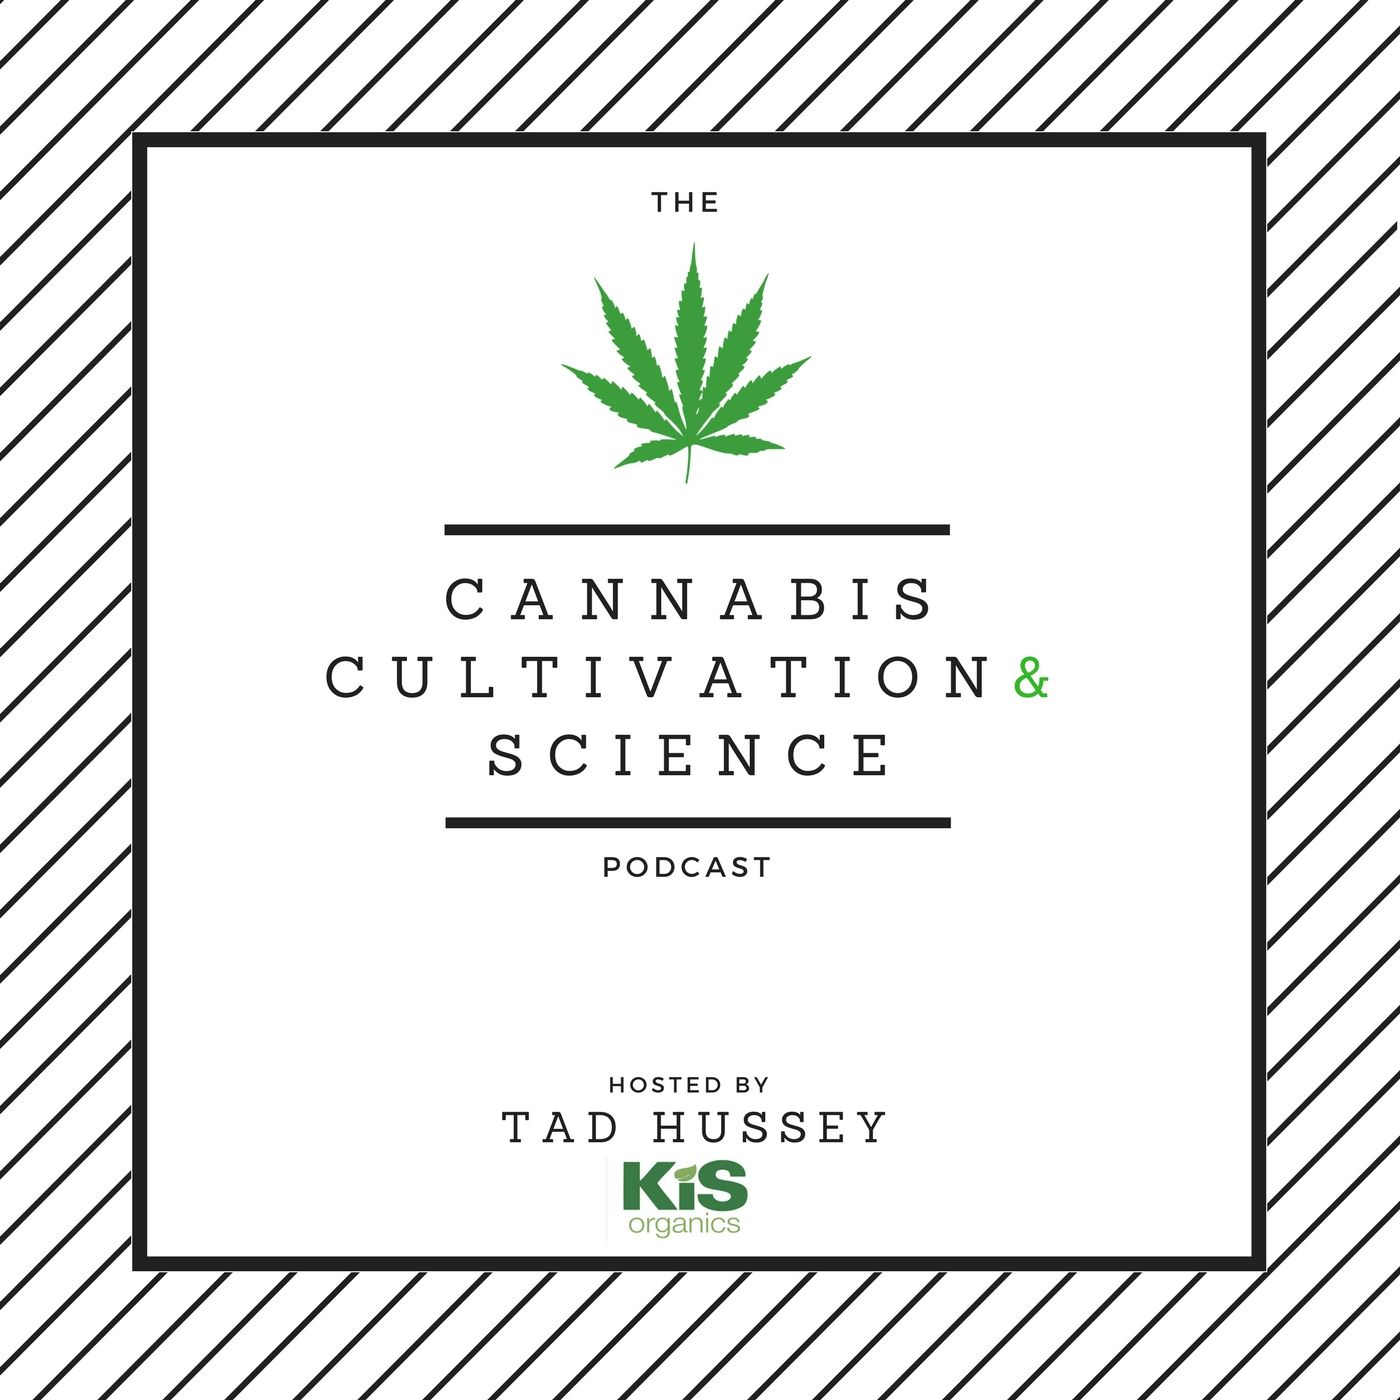 Episode 58: The Science Behind the Cannabis Experience with Dr. Adie Rae